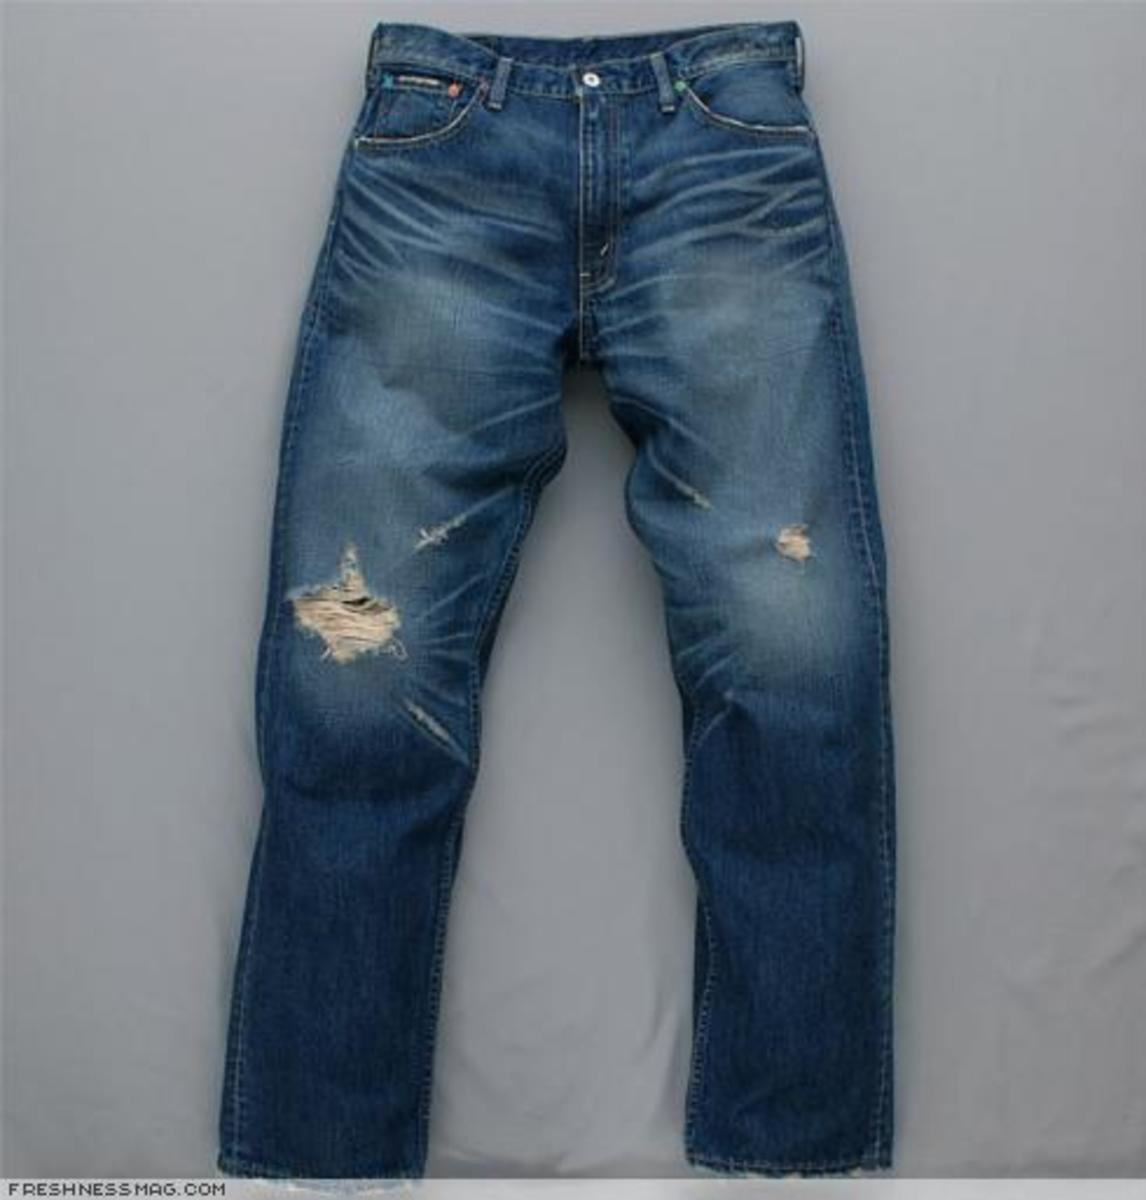 SWAGGER x Levi's 503 - 1